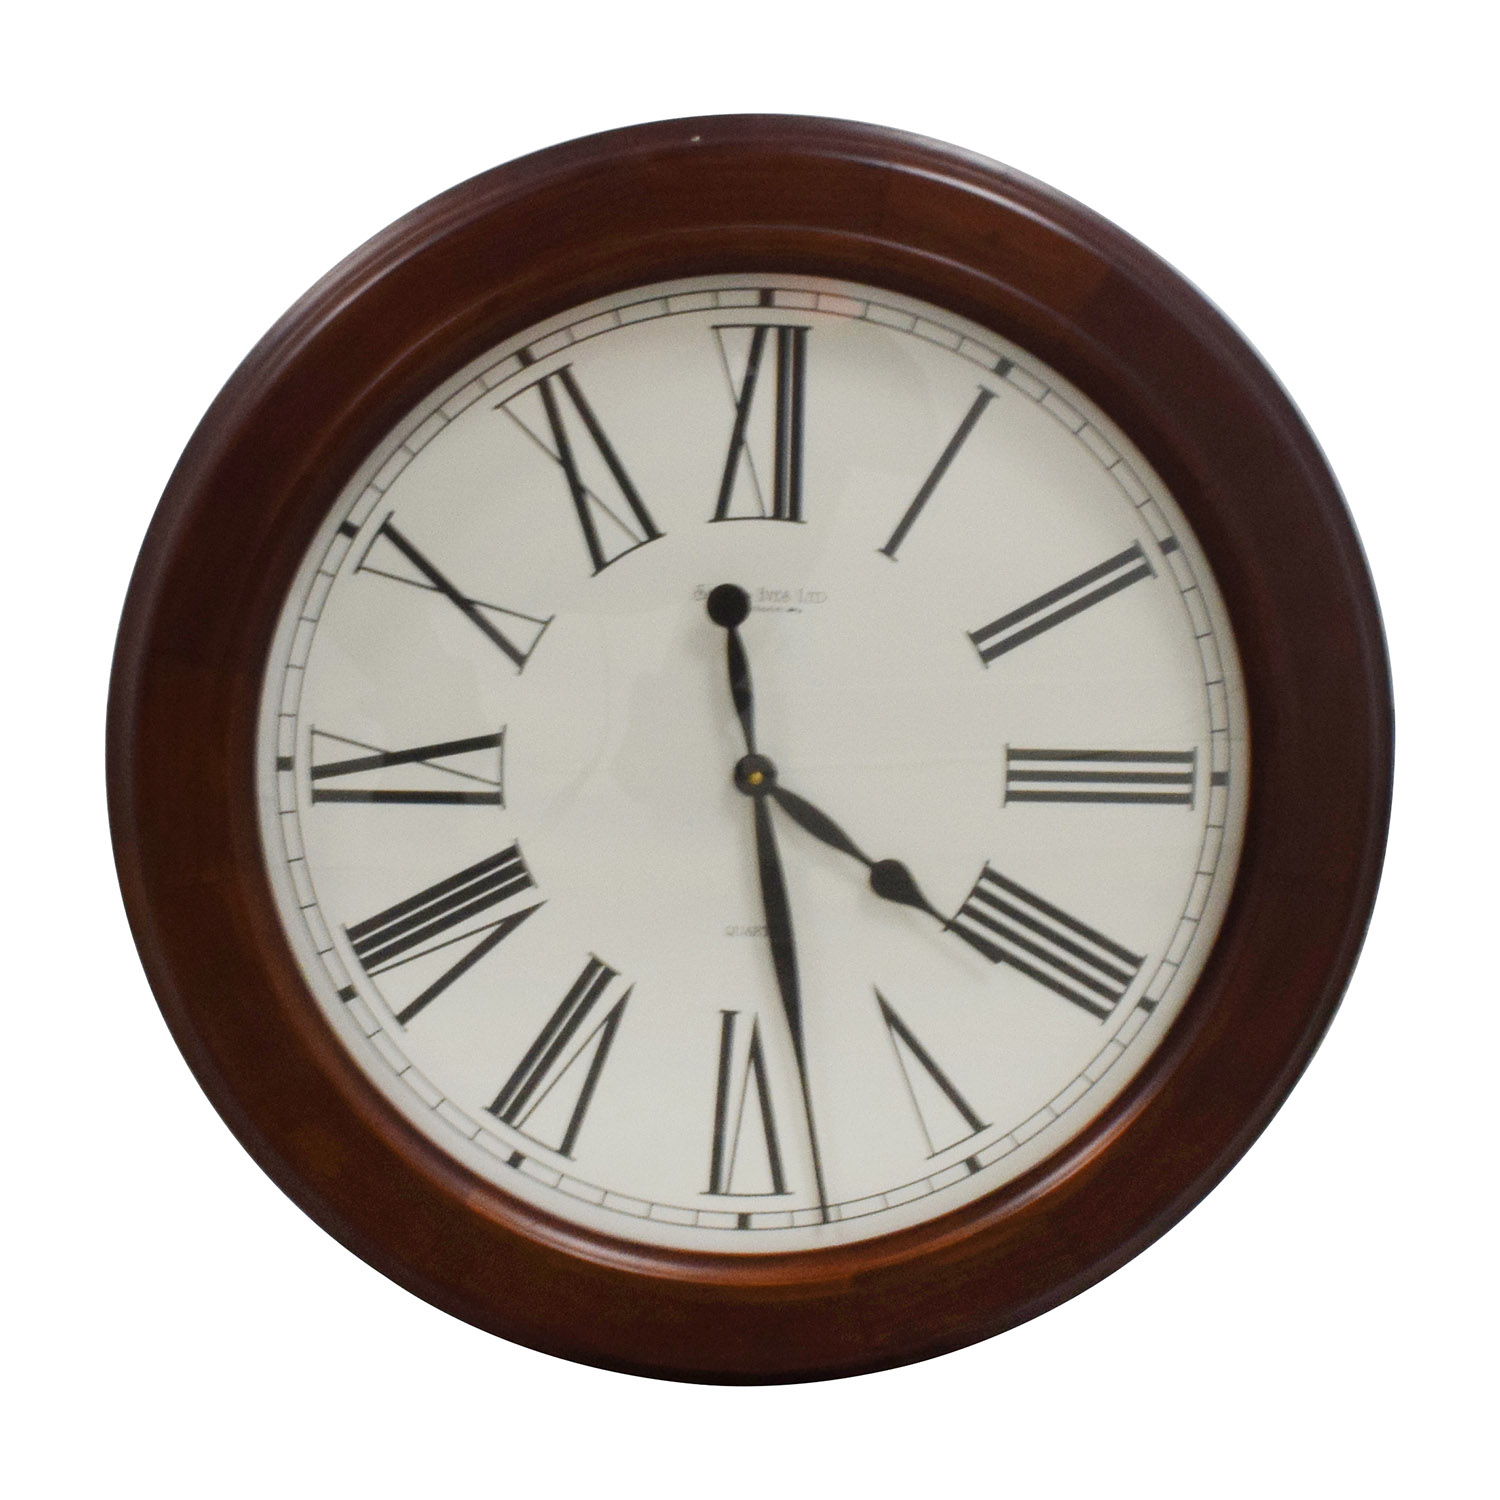 31 Off Smith Ives Roman Numeral Clock In Wood Frame Decor